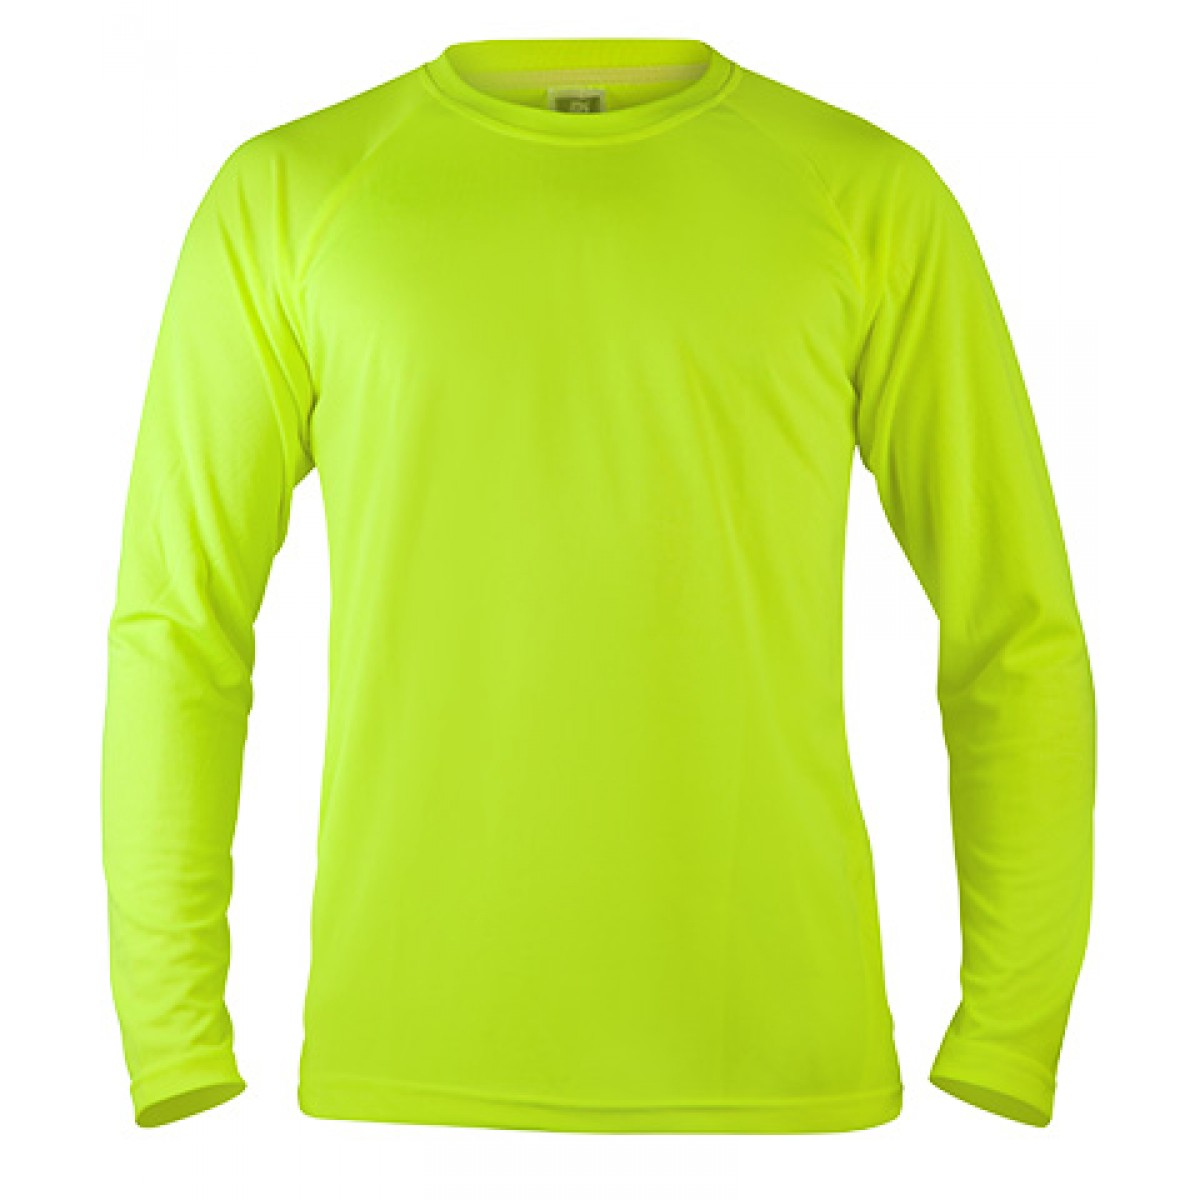 Long Sleeve Performance -Safety Green-YL